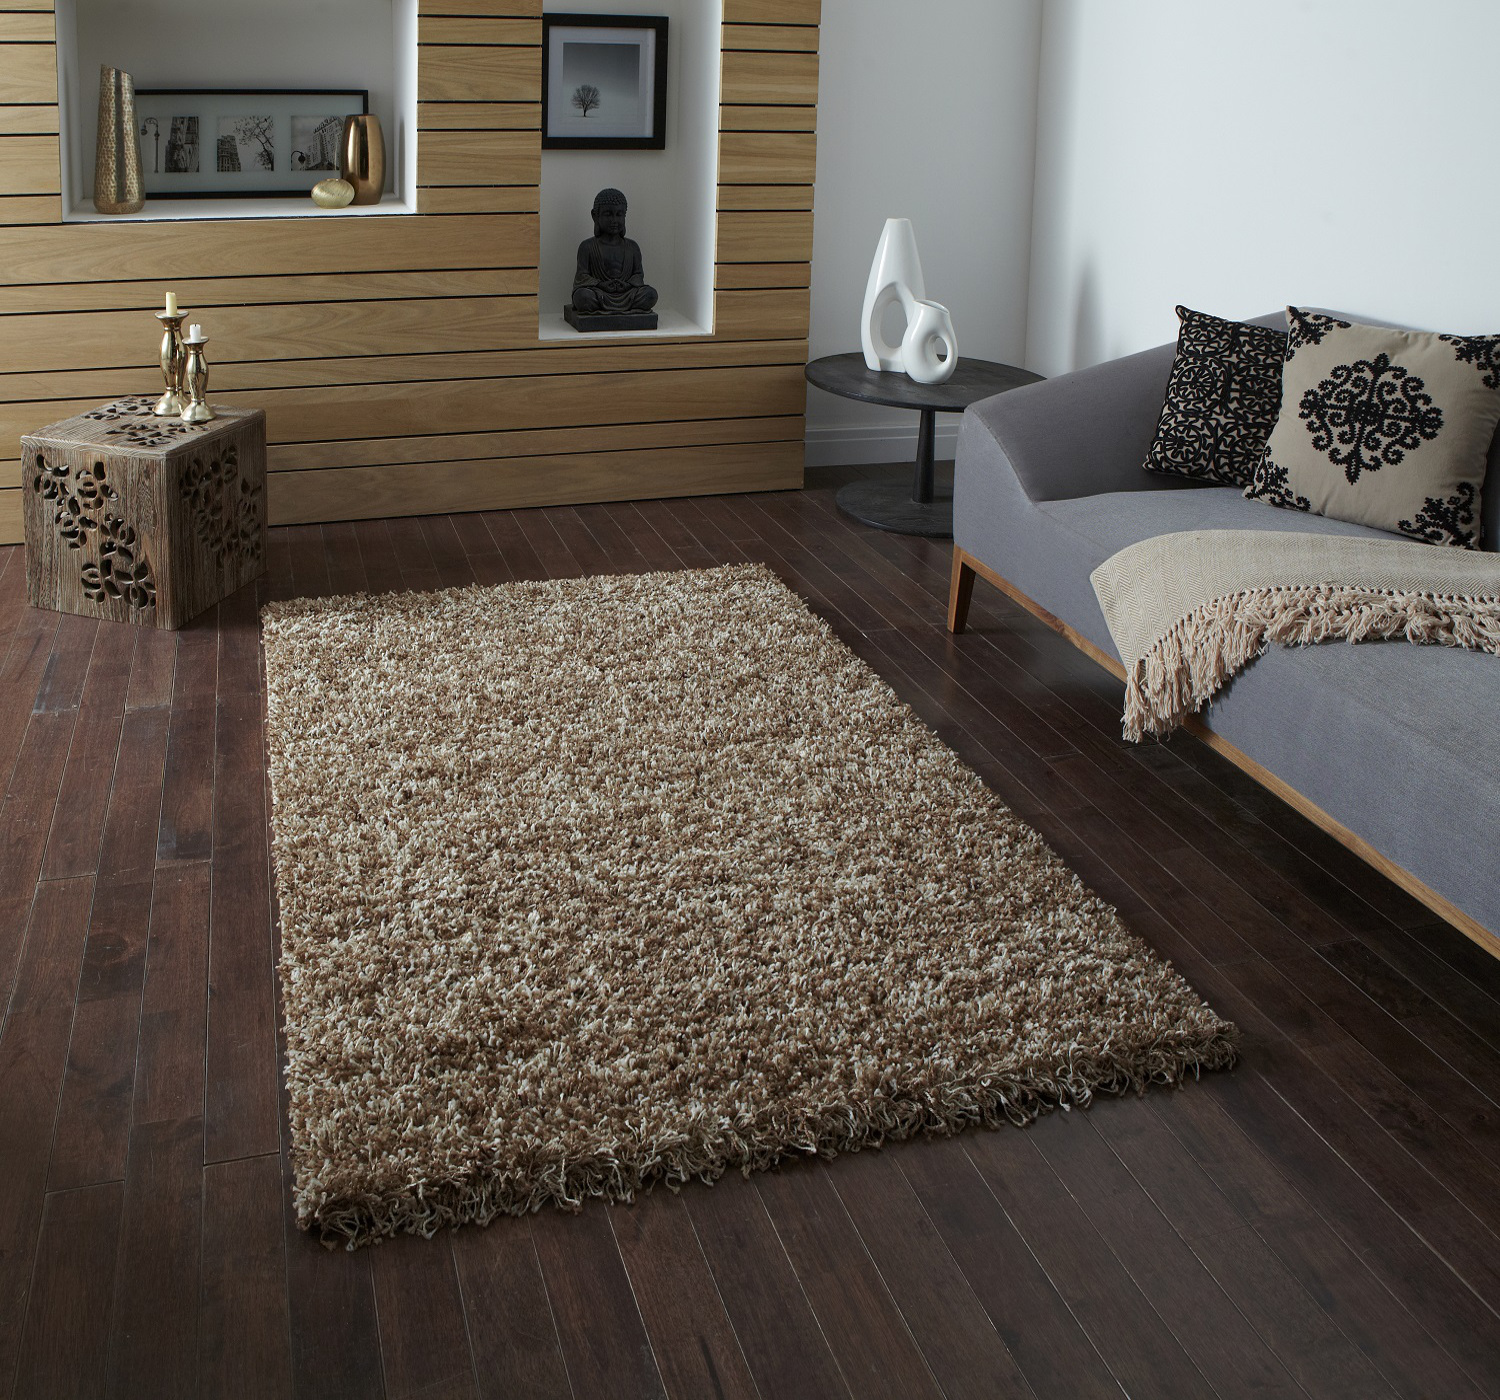 indoor floor area incredible rugs at genius or walmart outdoor rhneaststylecom orian darius stunning ideas hunkydory carpet shag runner rug safavieh solid